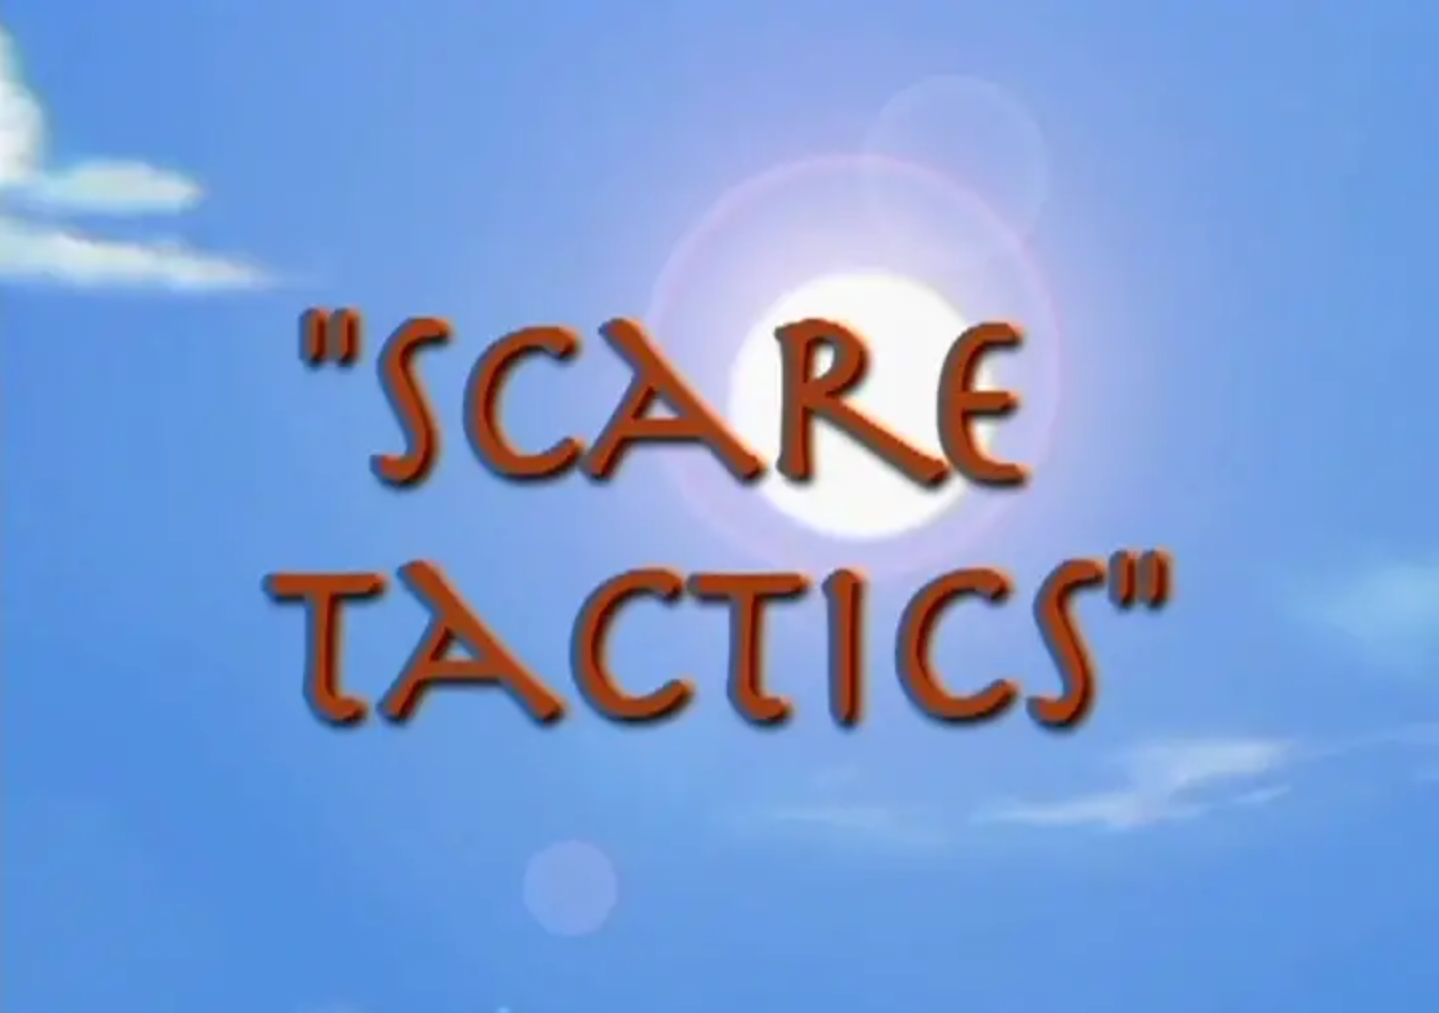 Bugtime Adventures - Scare Tactics - The Story of Gideon vs. the Midianites